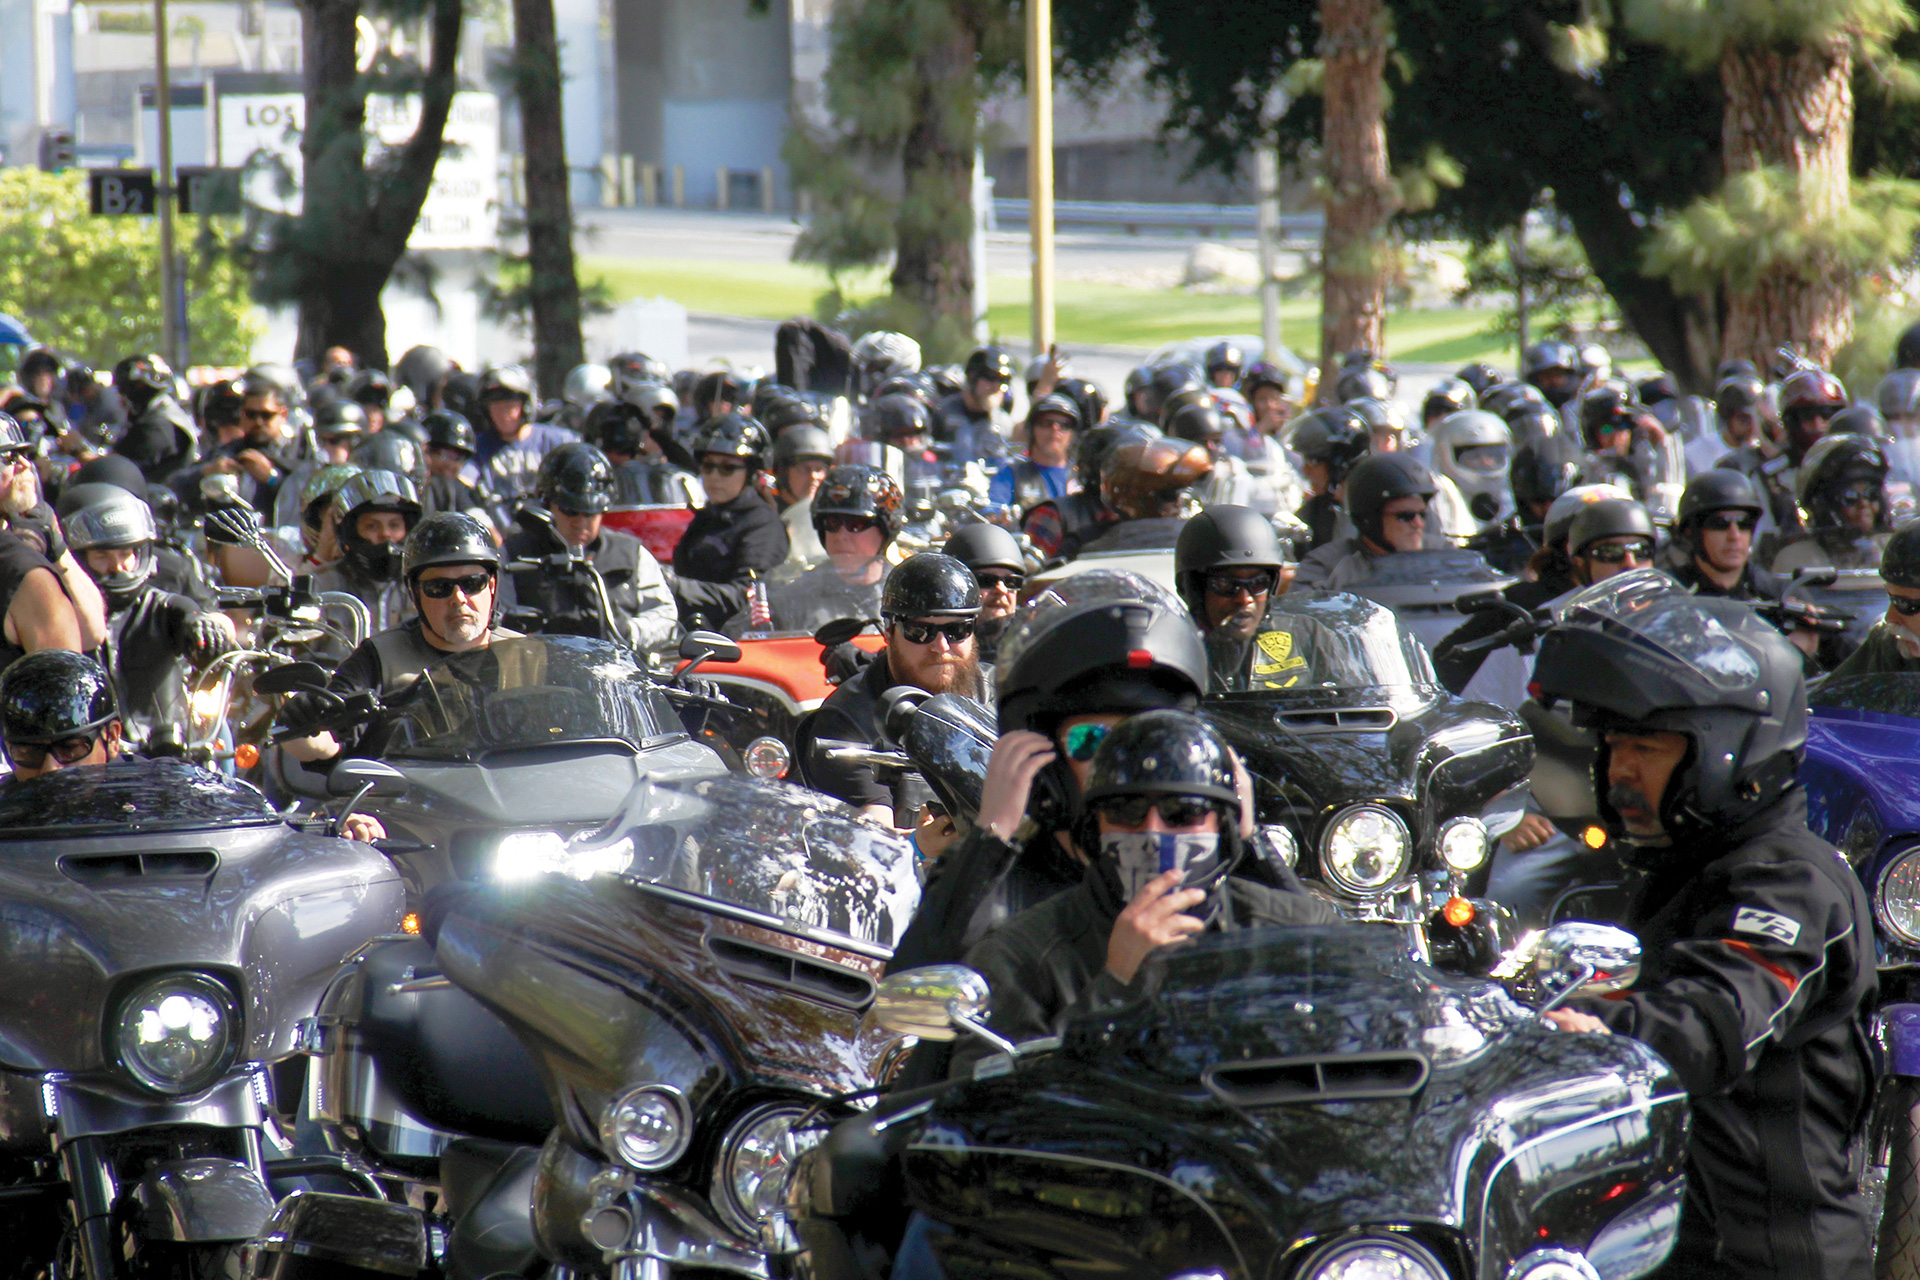 scenes-from-the-6th-annual-heroes-ride-9